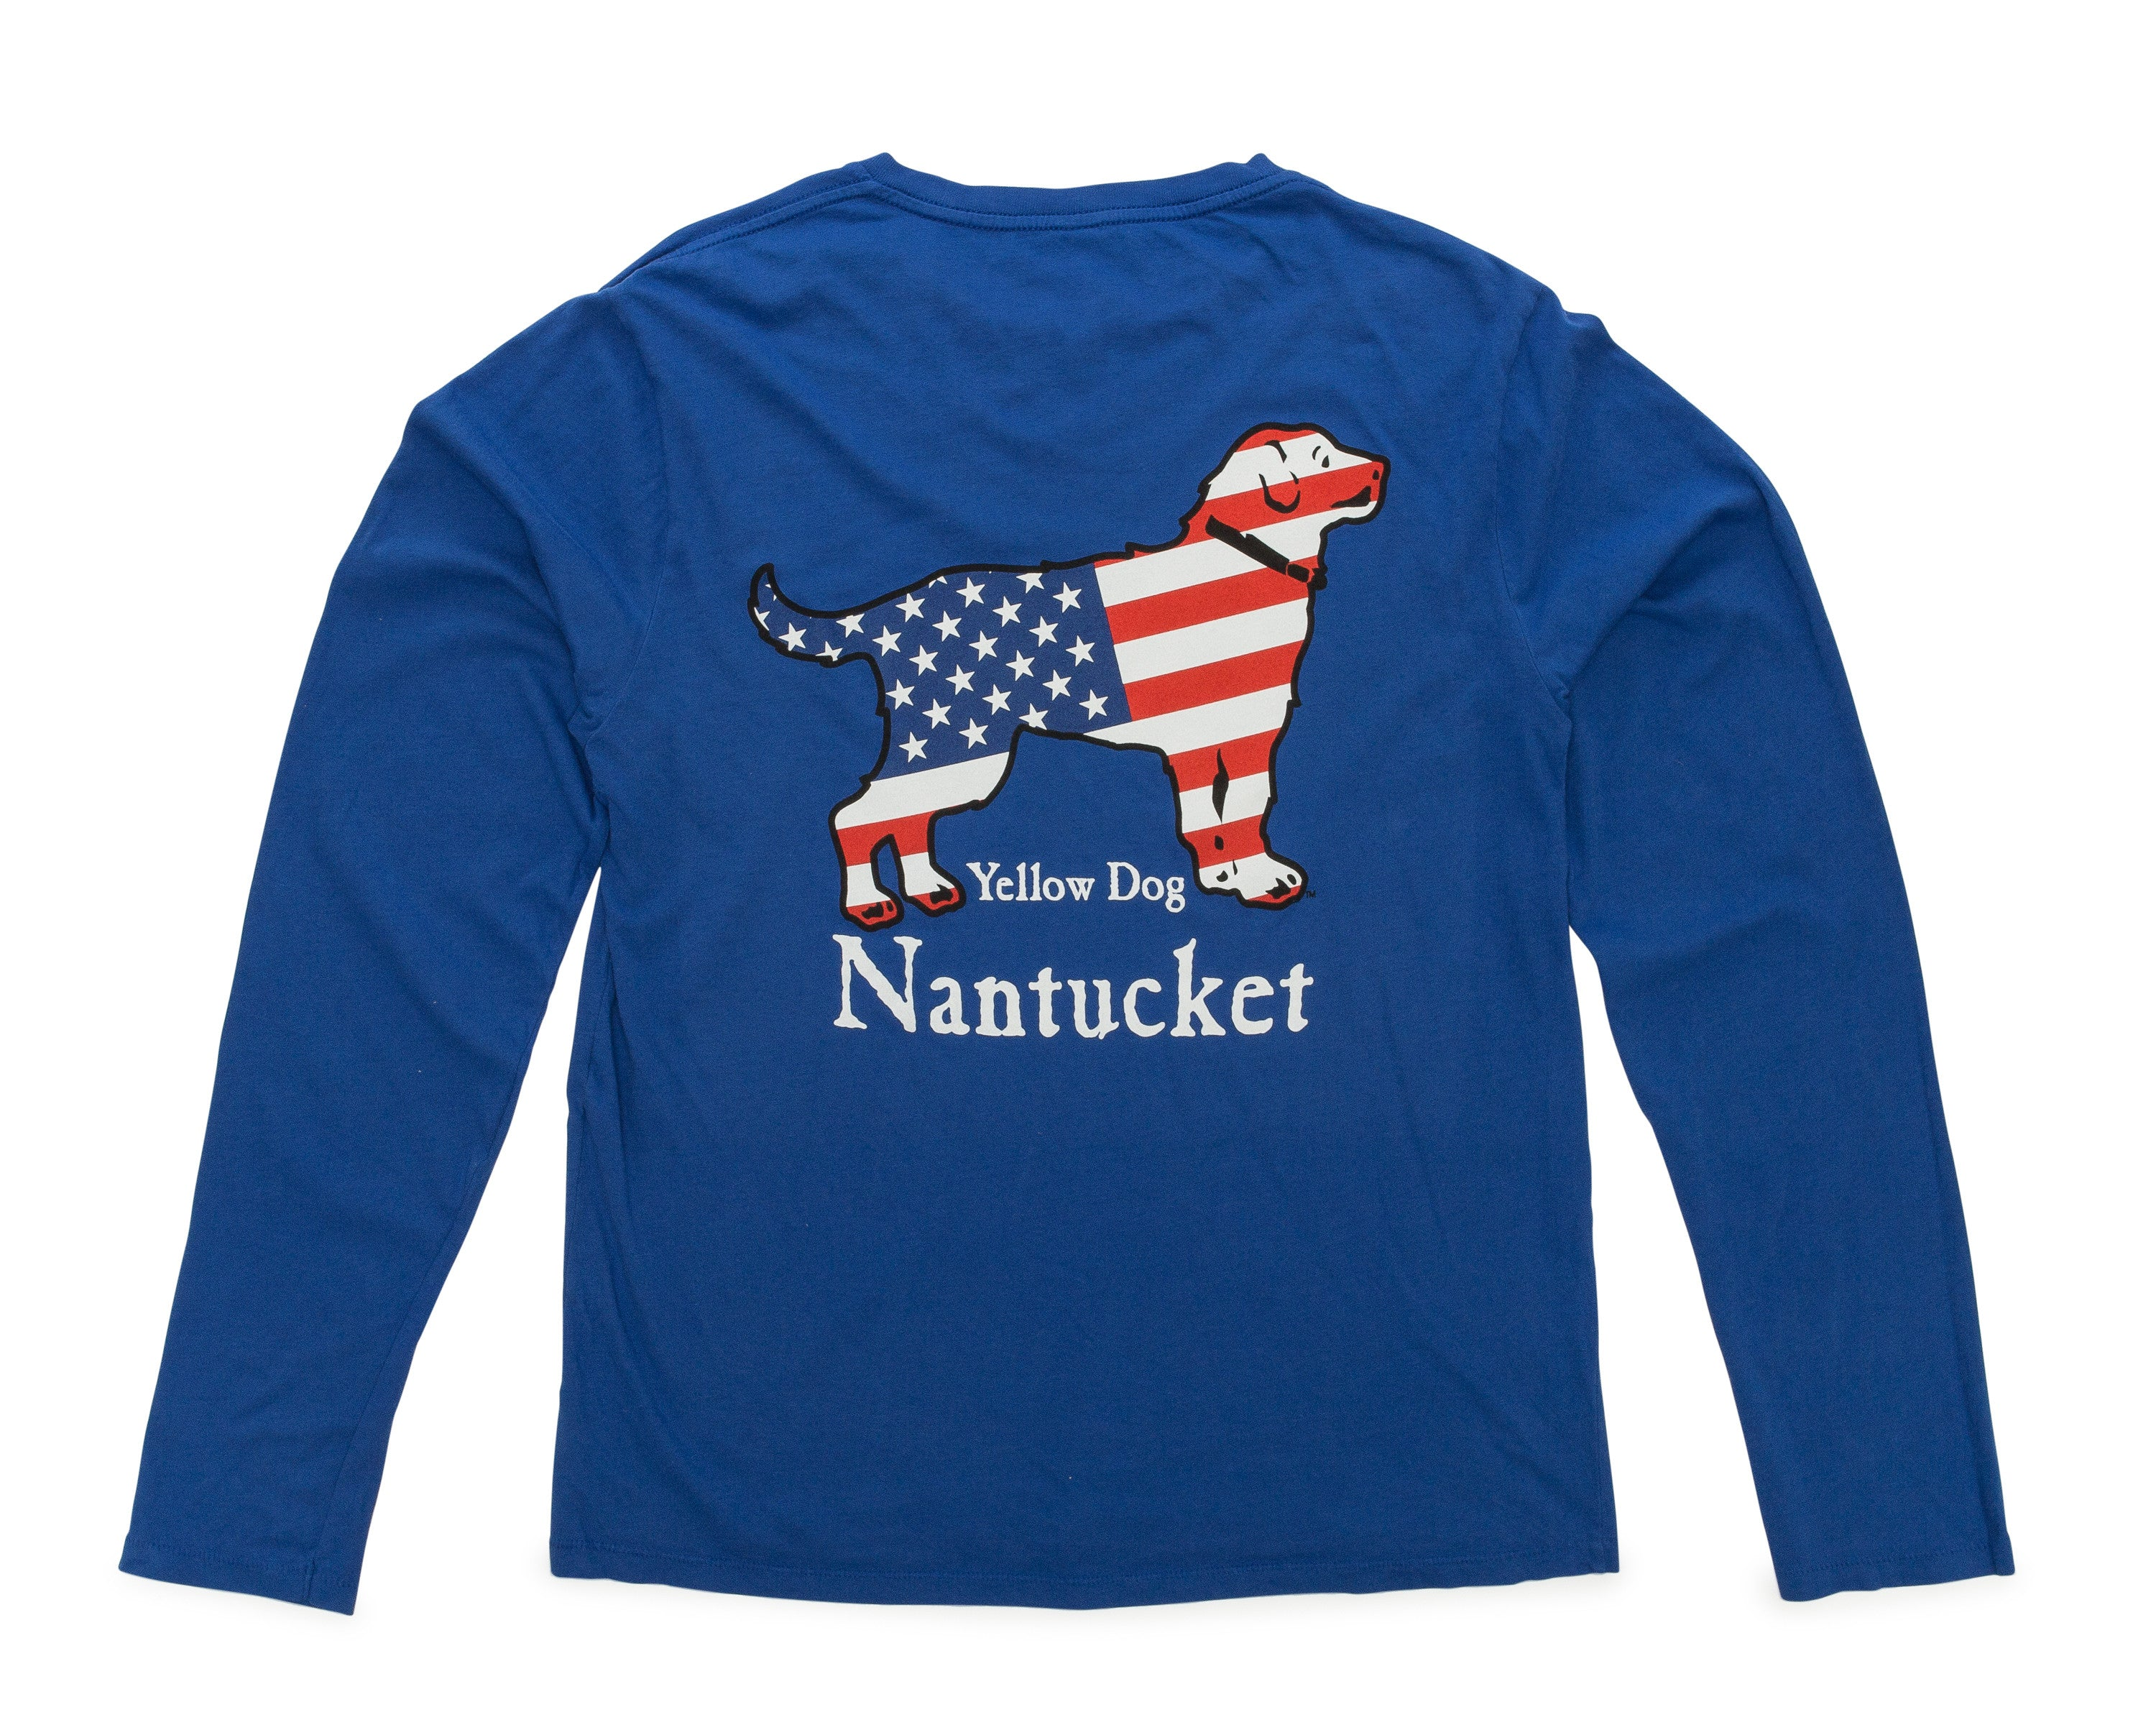 Yellow Dog Nantucket Long Sleeve USA Tshirt